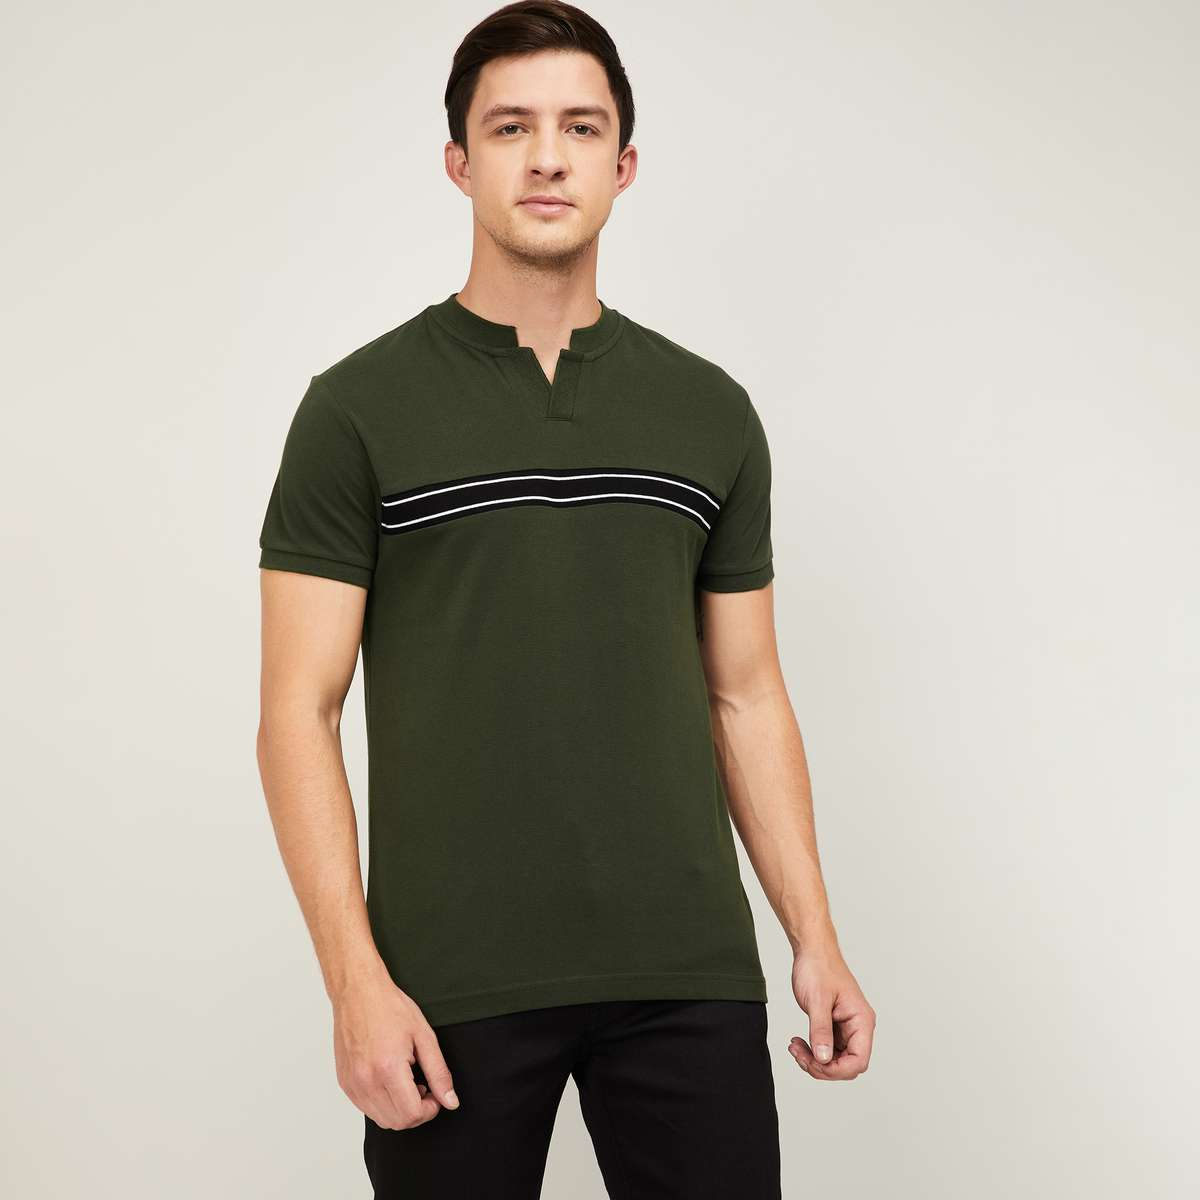 DENIMIZE Men Striped Regular Fit Polo T-shirt